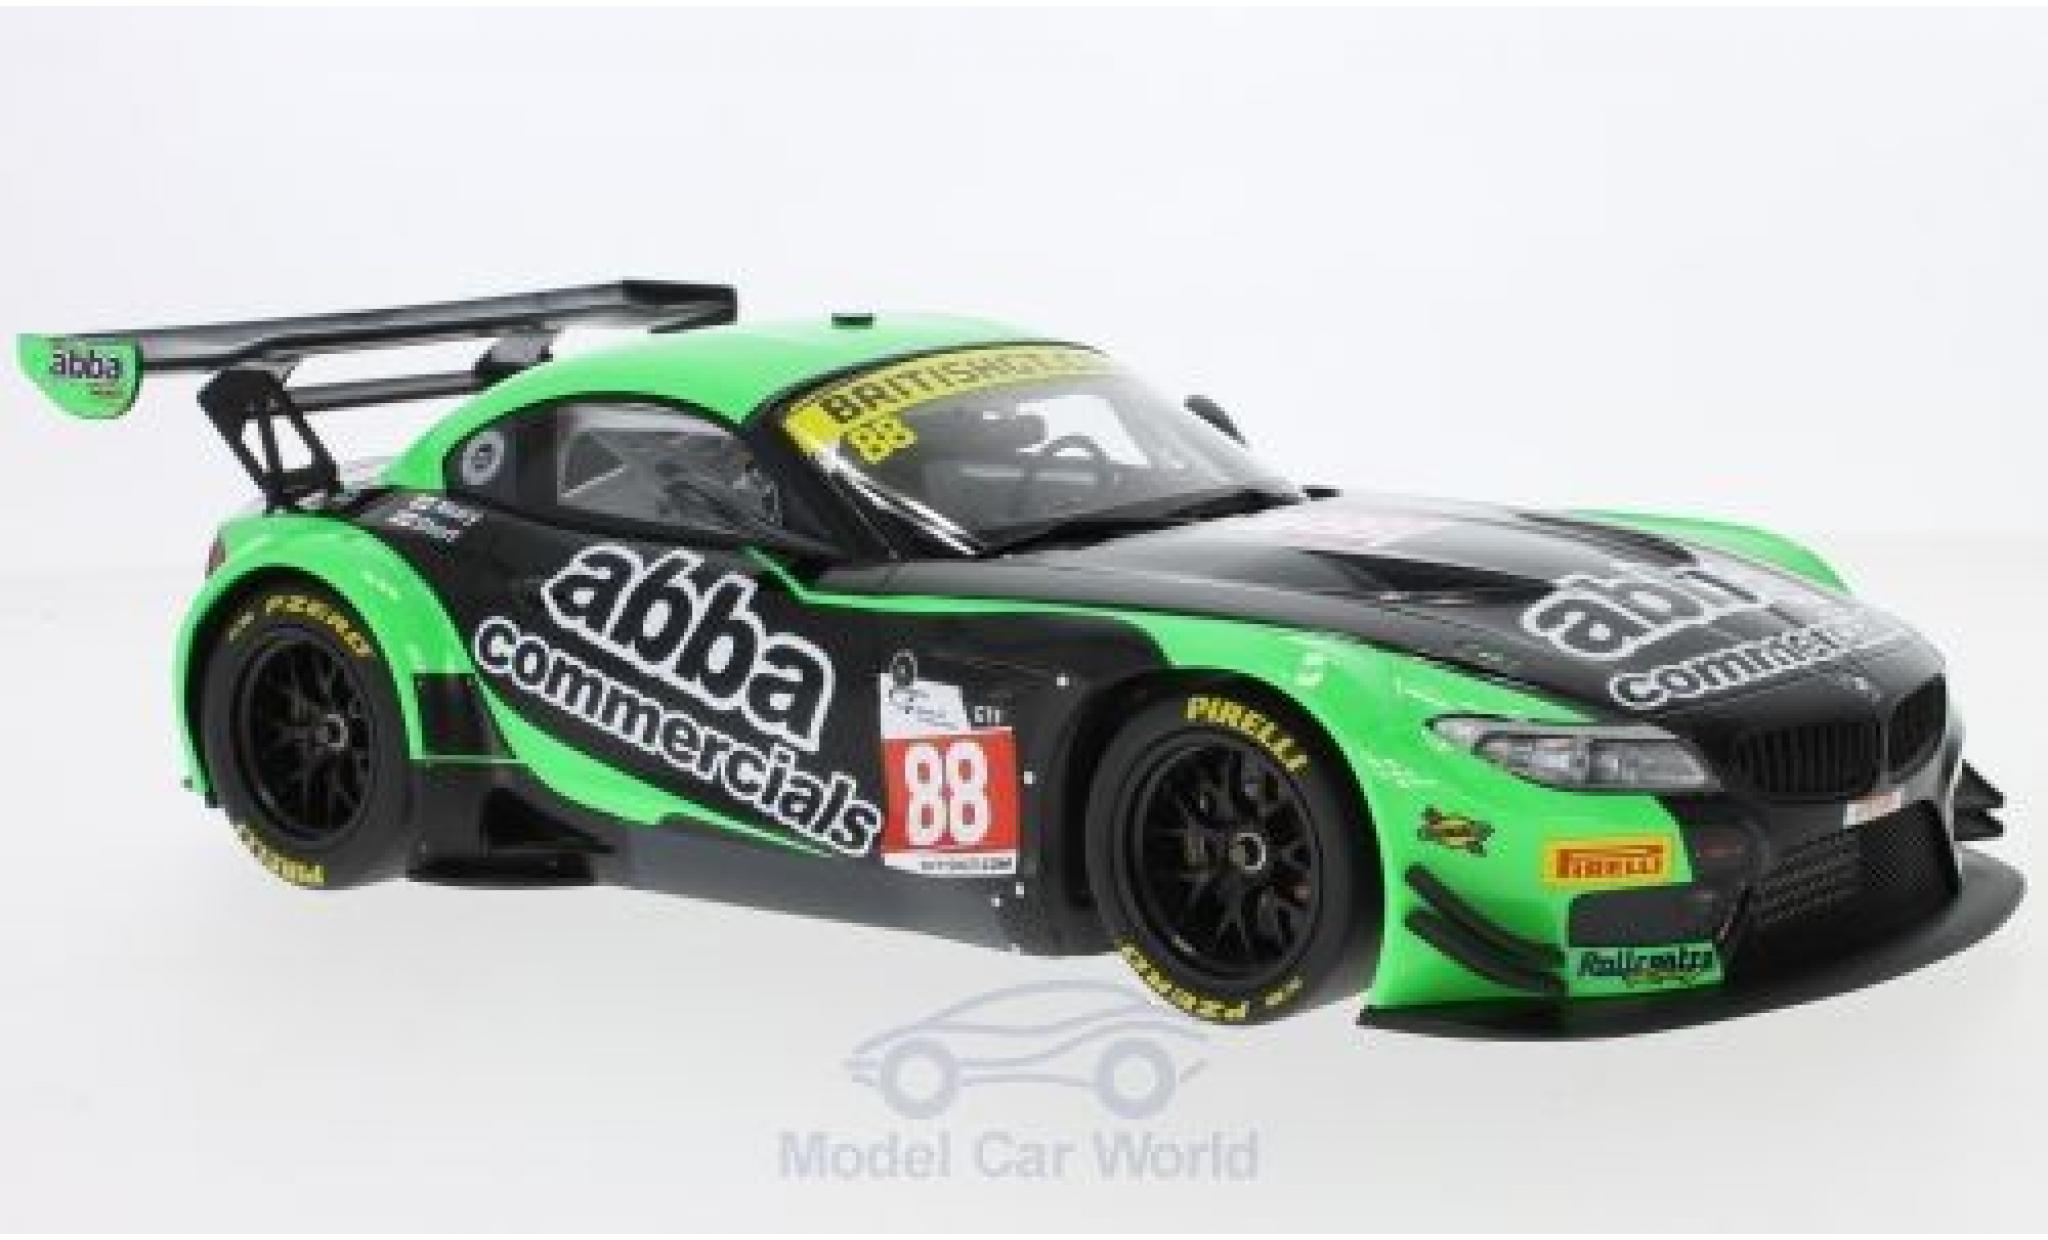 Bmw Z4 E89 1/18 Minichamps BMW GT3 (E89) No.88 ABBA with Rollcentre Racing British GT Championship 2016 R.Neary/M.Short